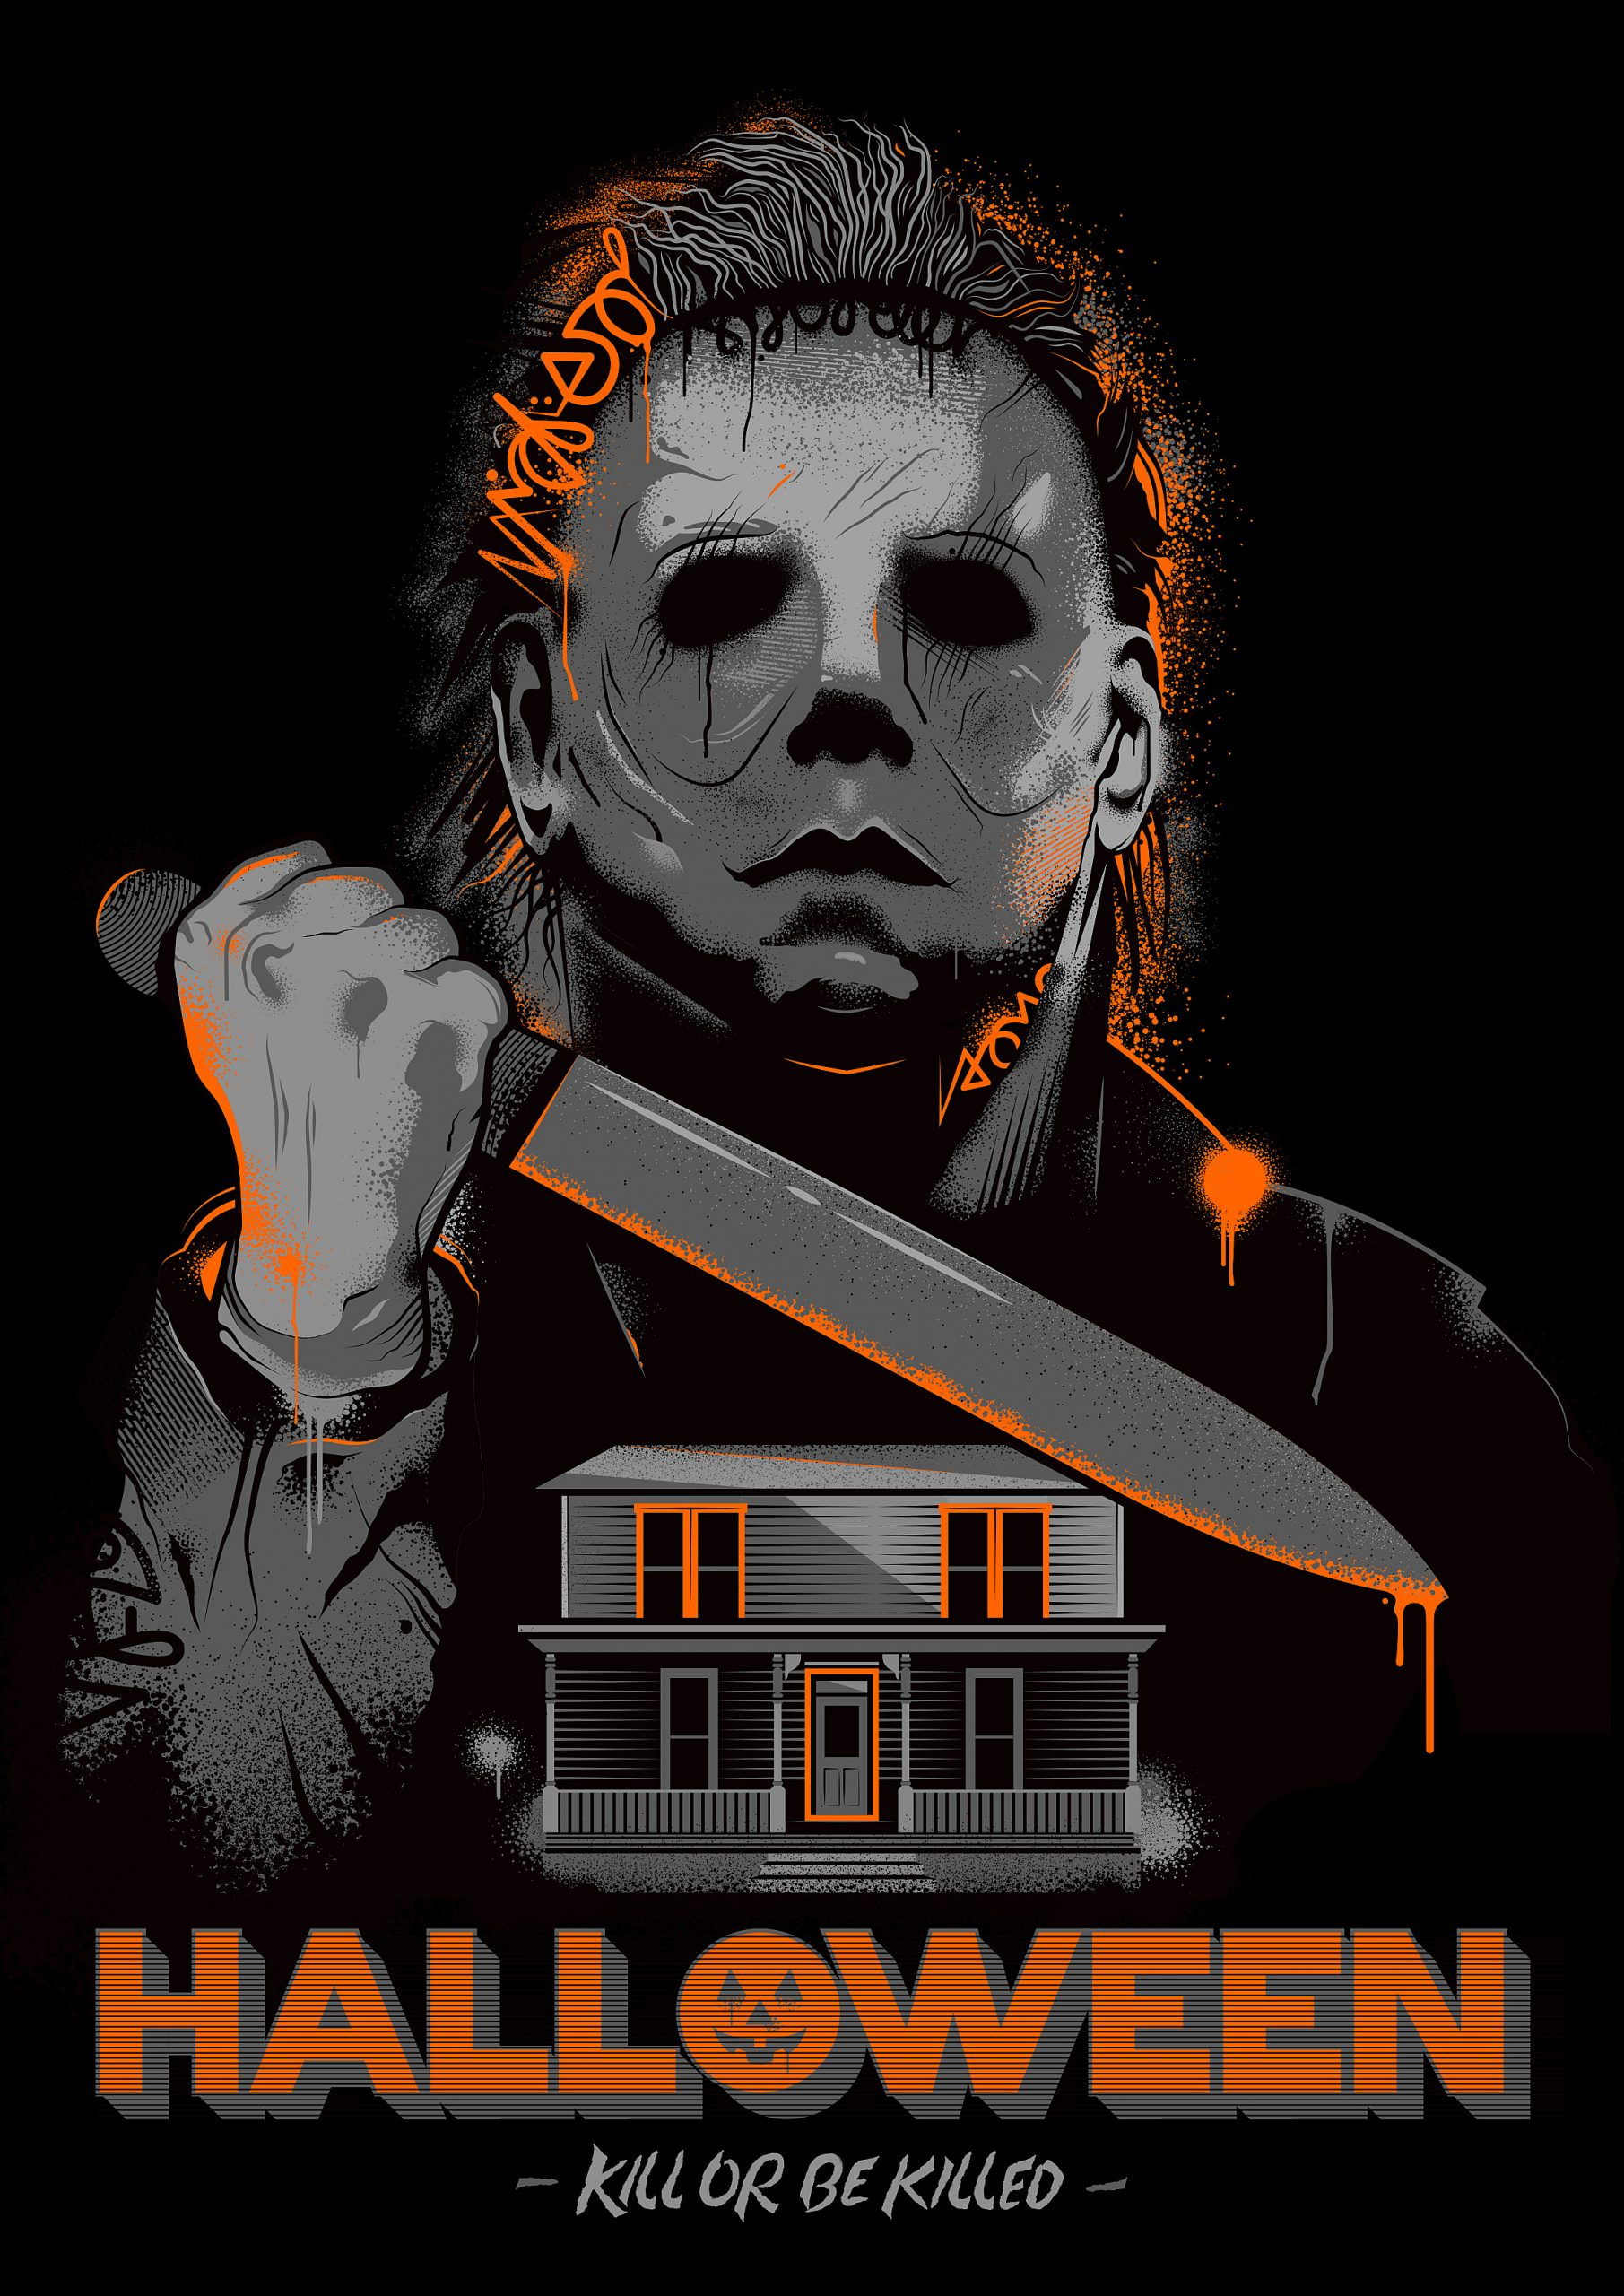 Halloween Alternative movie poster